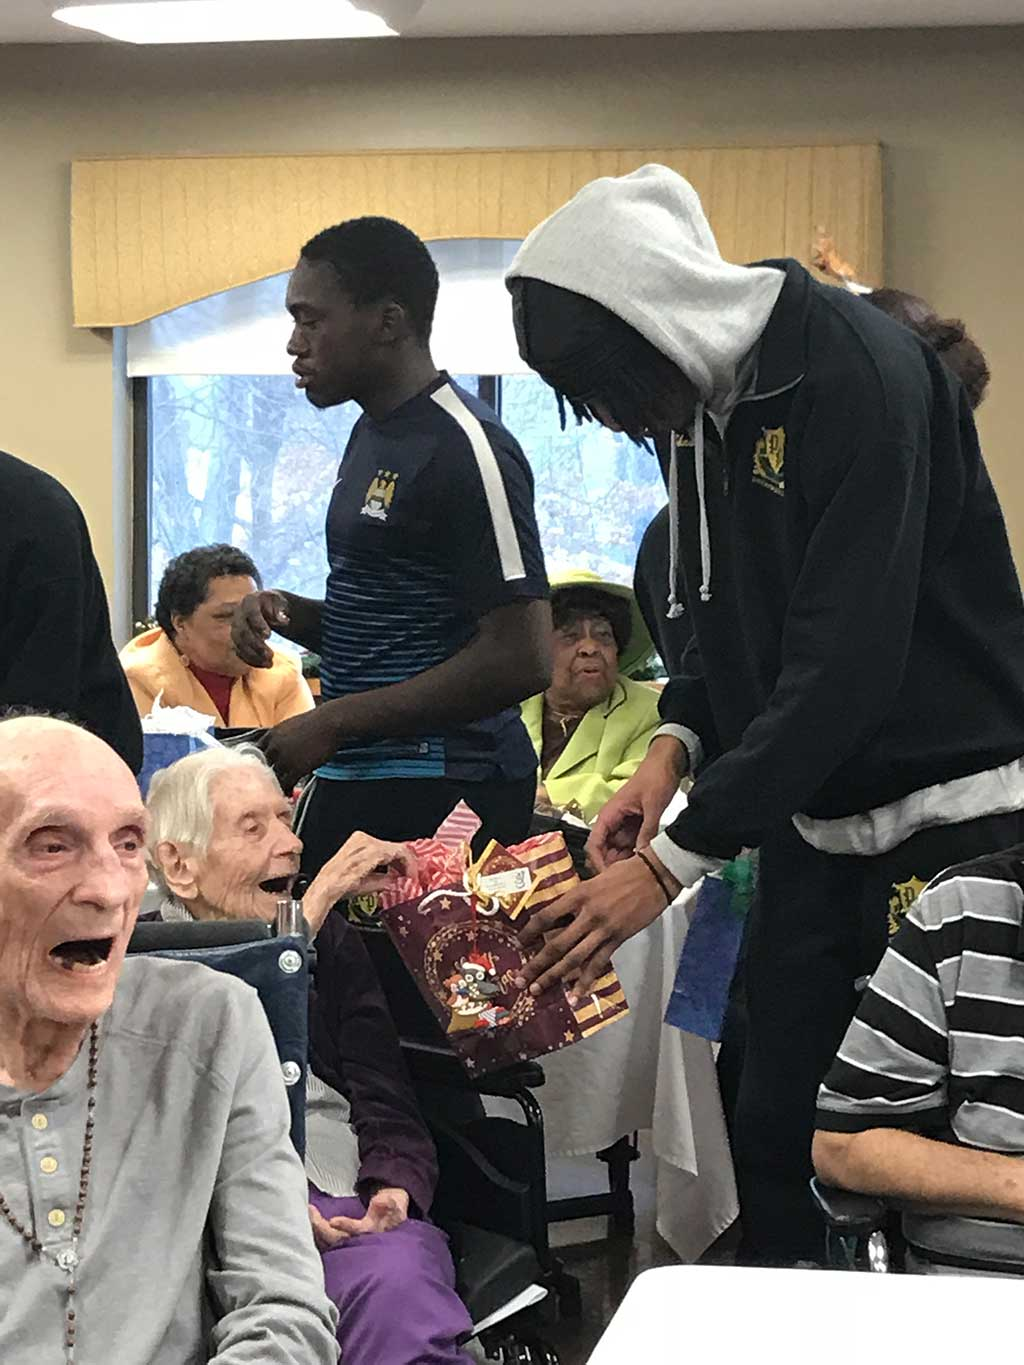 sharing with the elderly